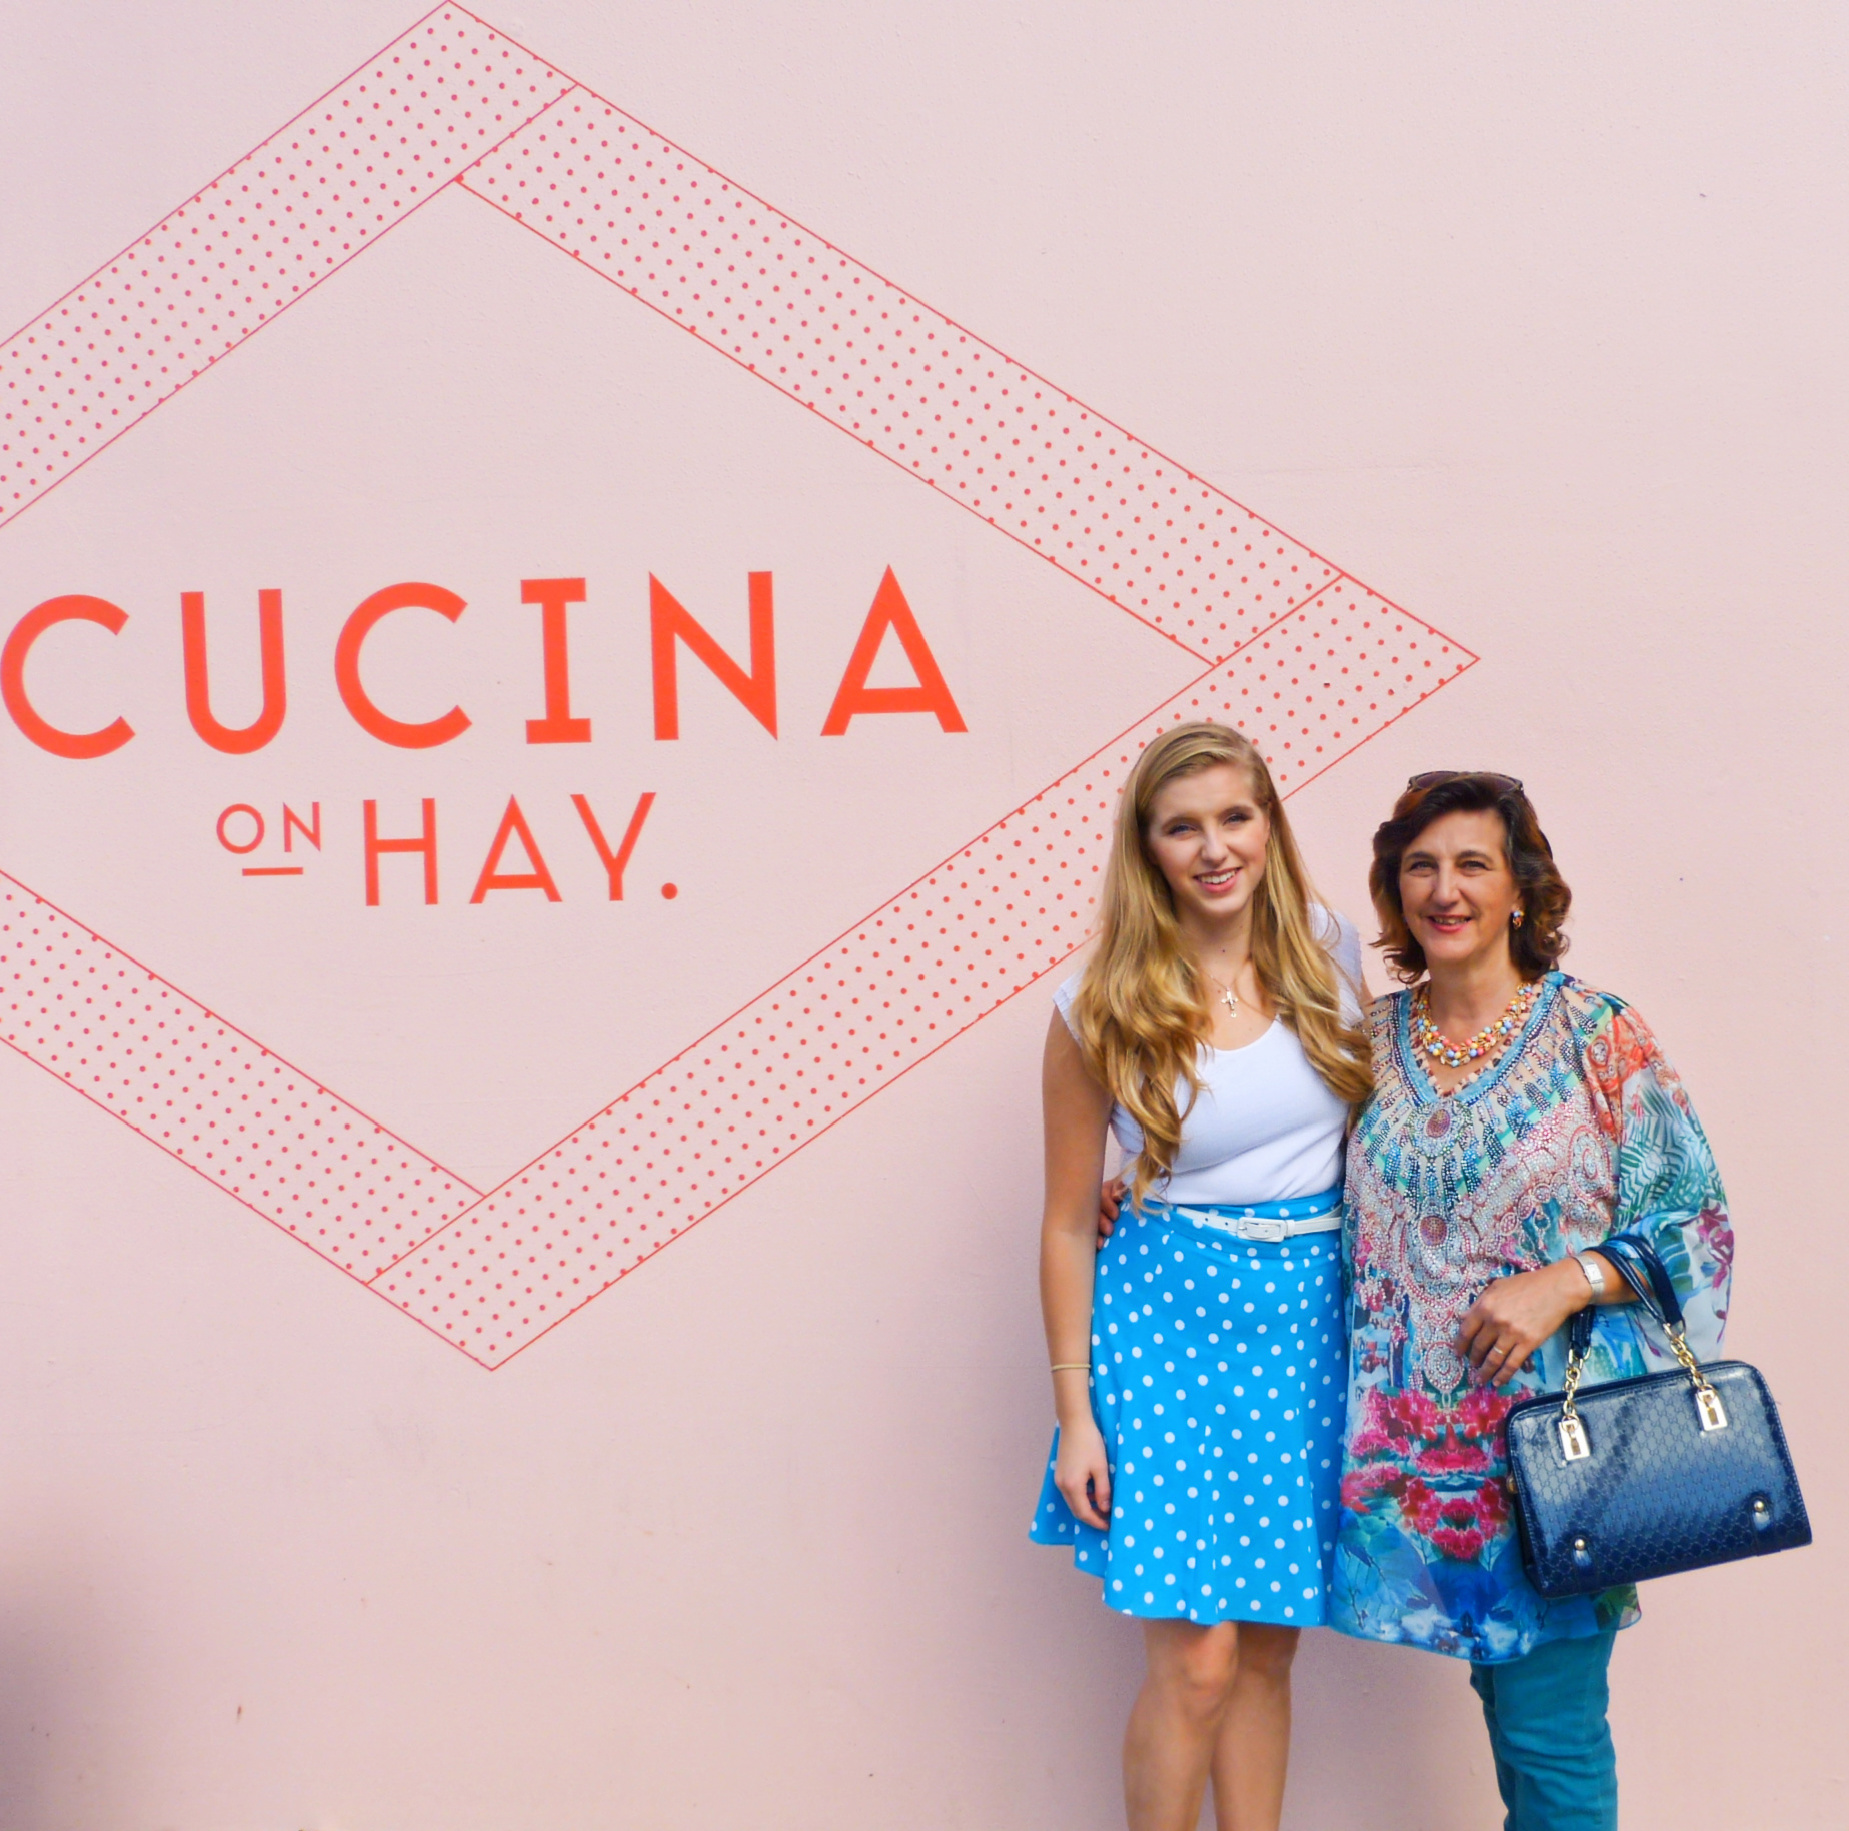 Cucina On Hay Cucina On Hay Grace Antoinette